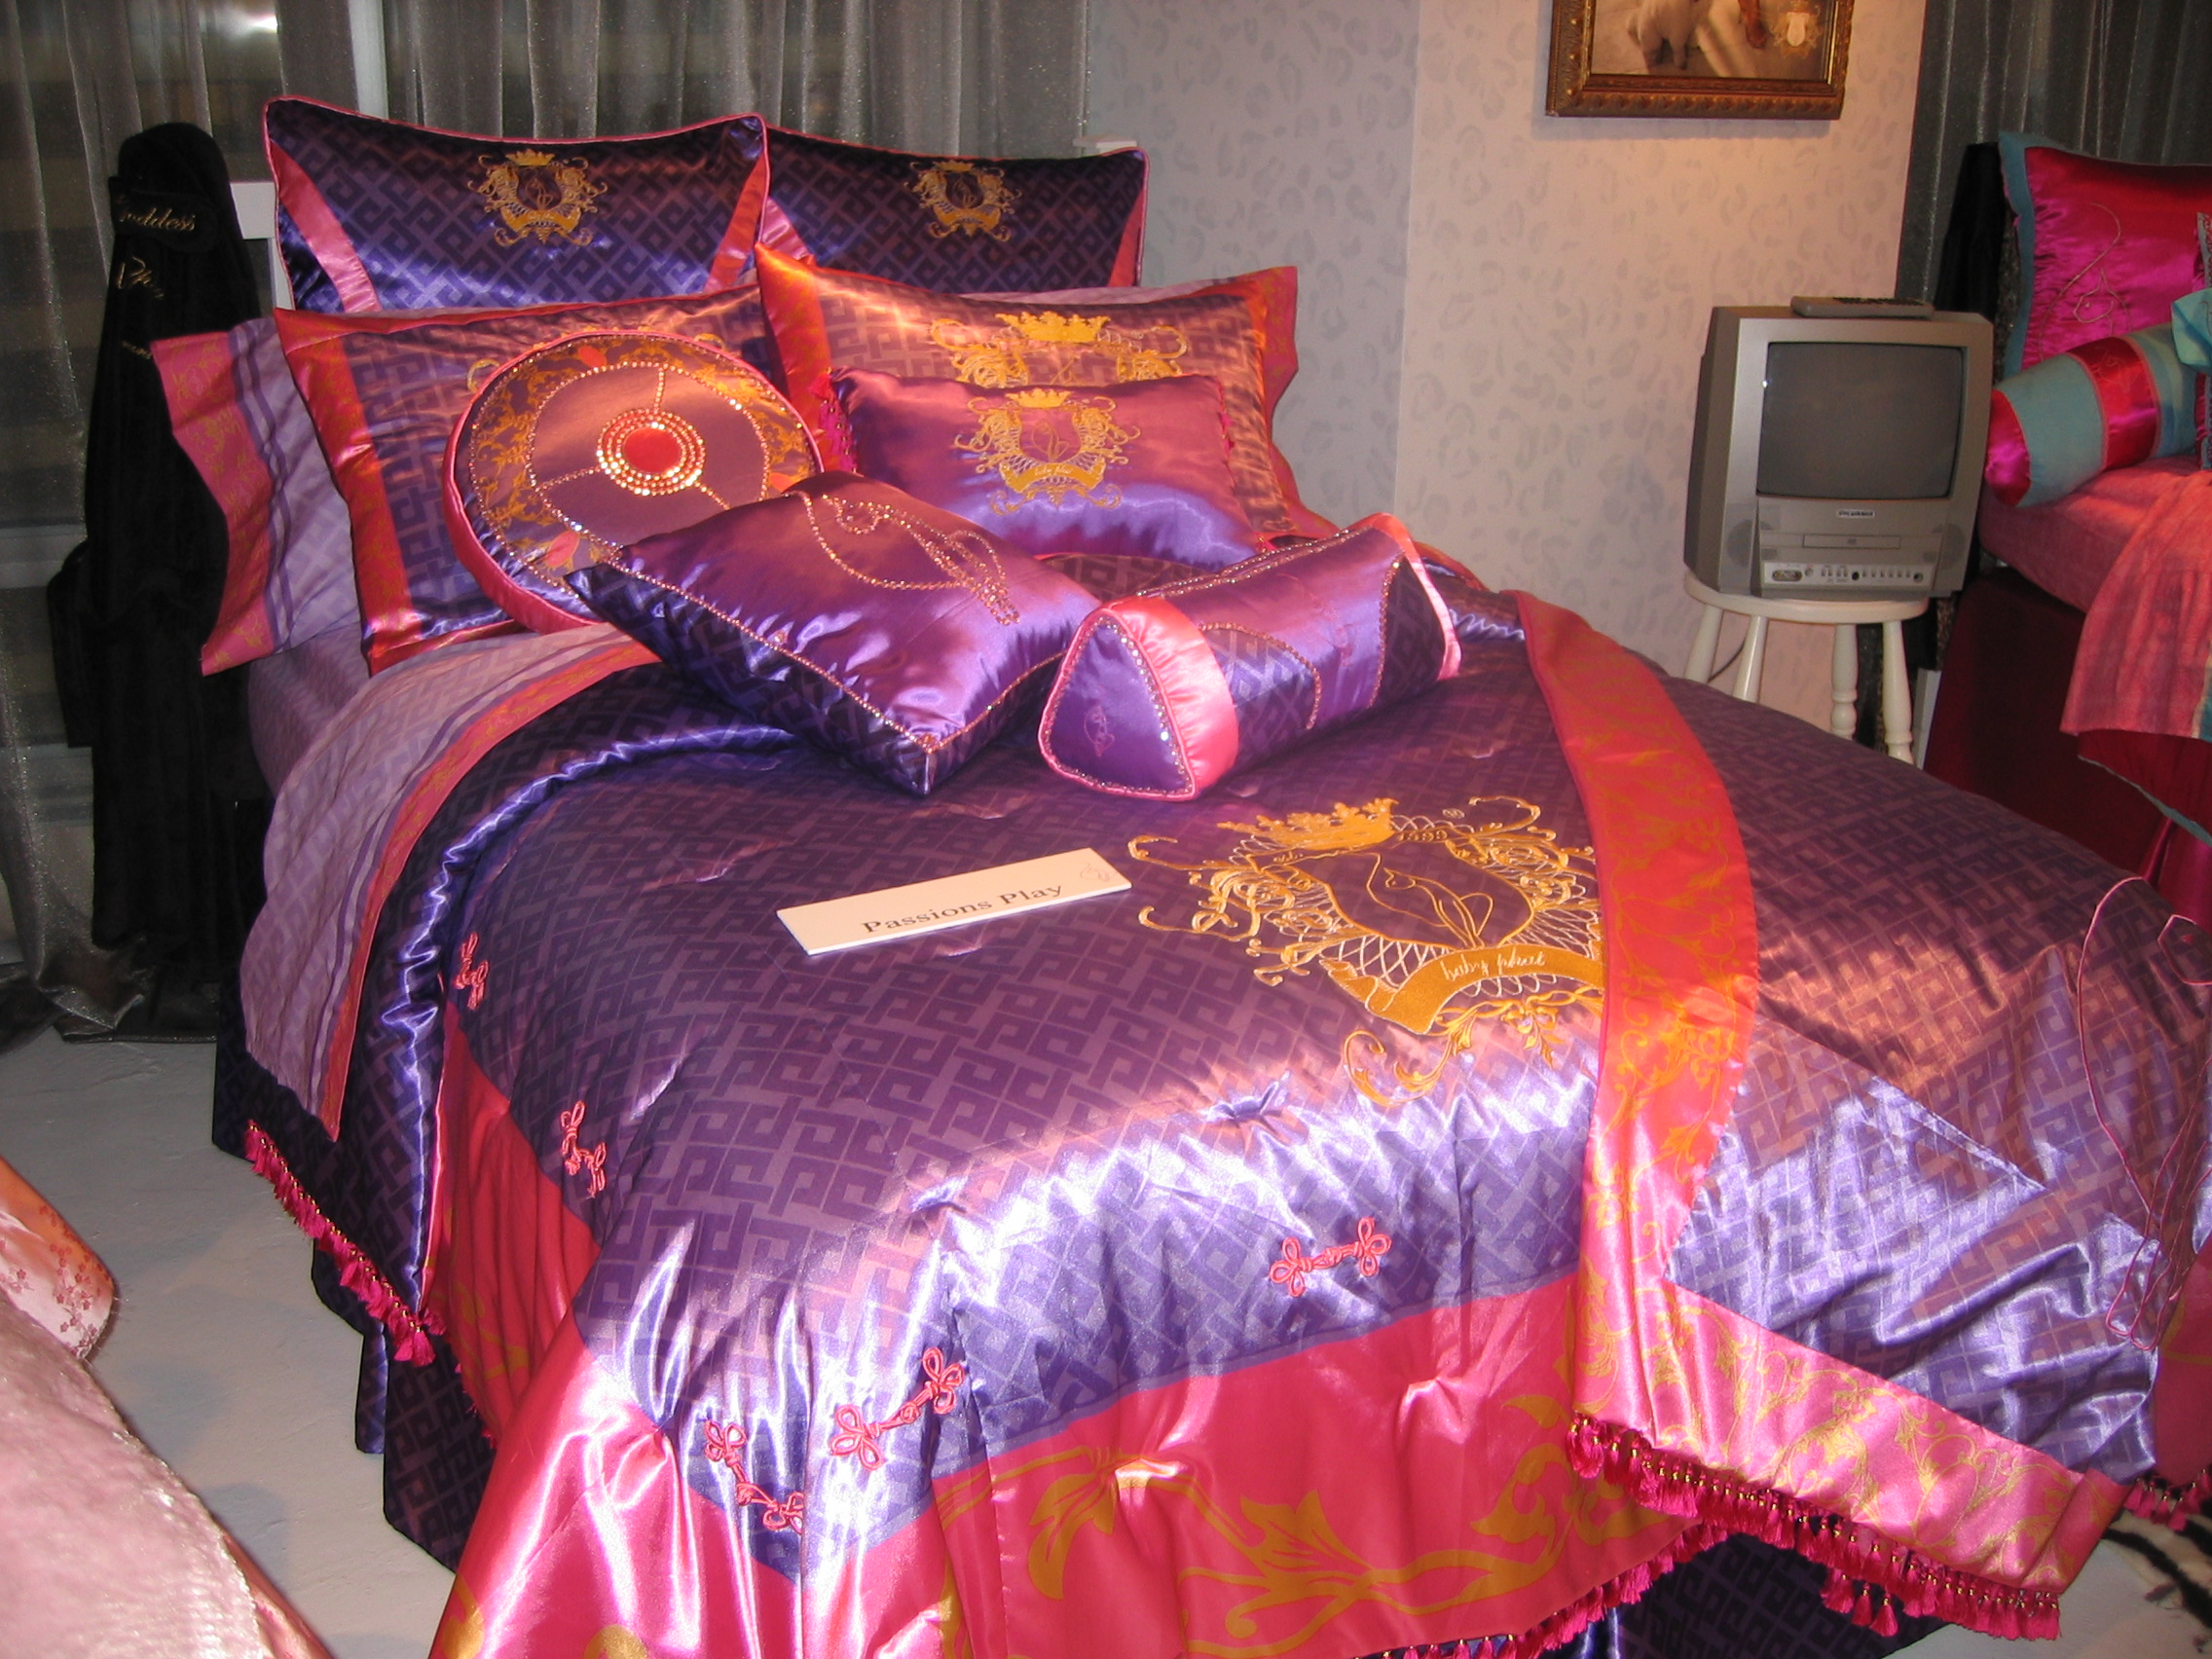 Designed Home furnishings / bedding as Creative Director for Dan River. License for Phat Farm & Baby Phat.